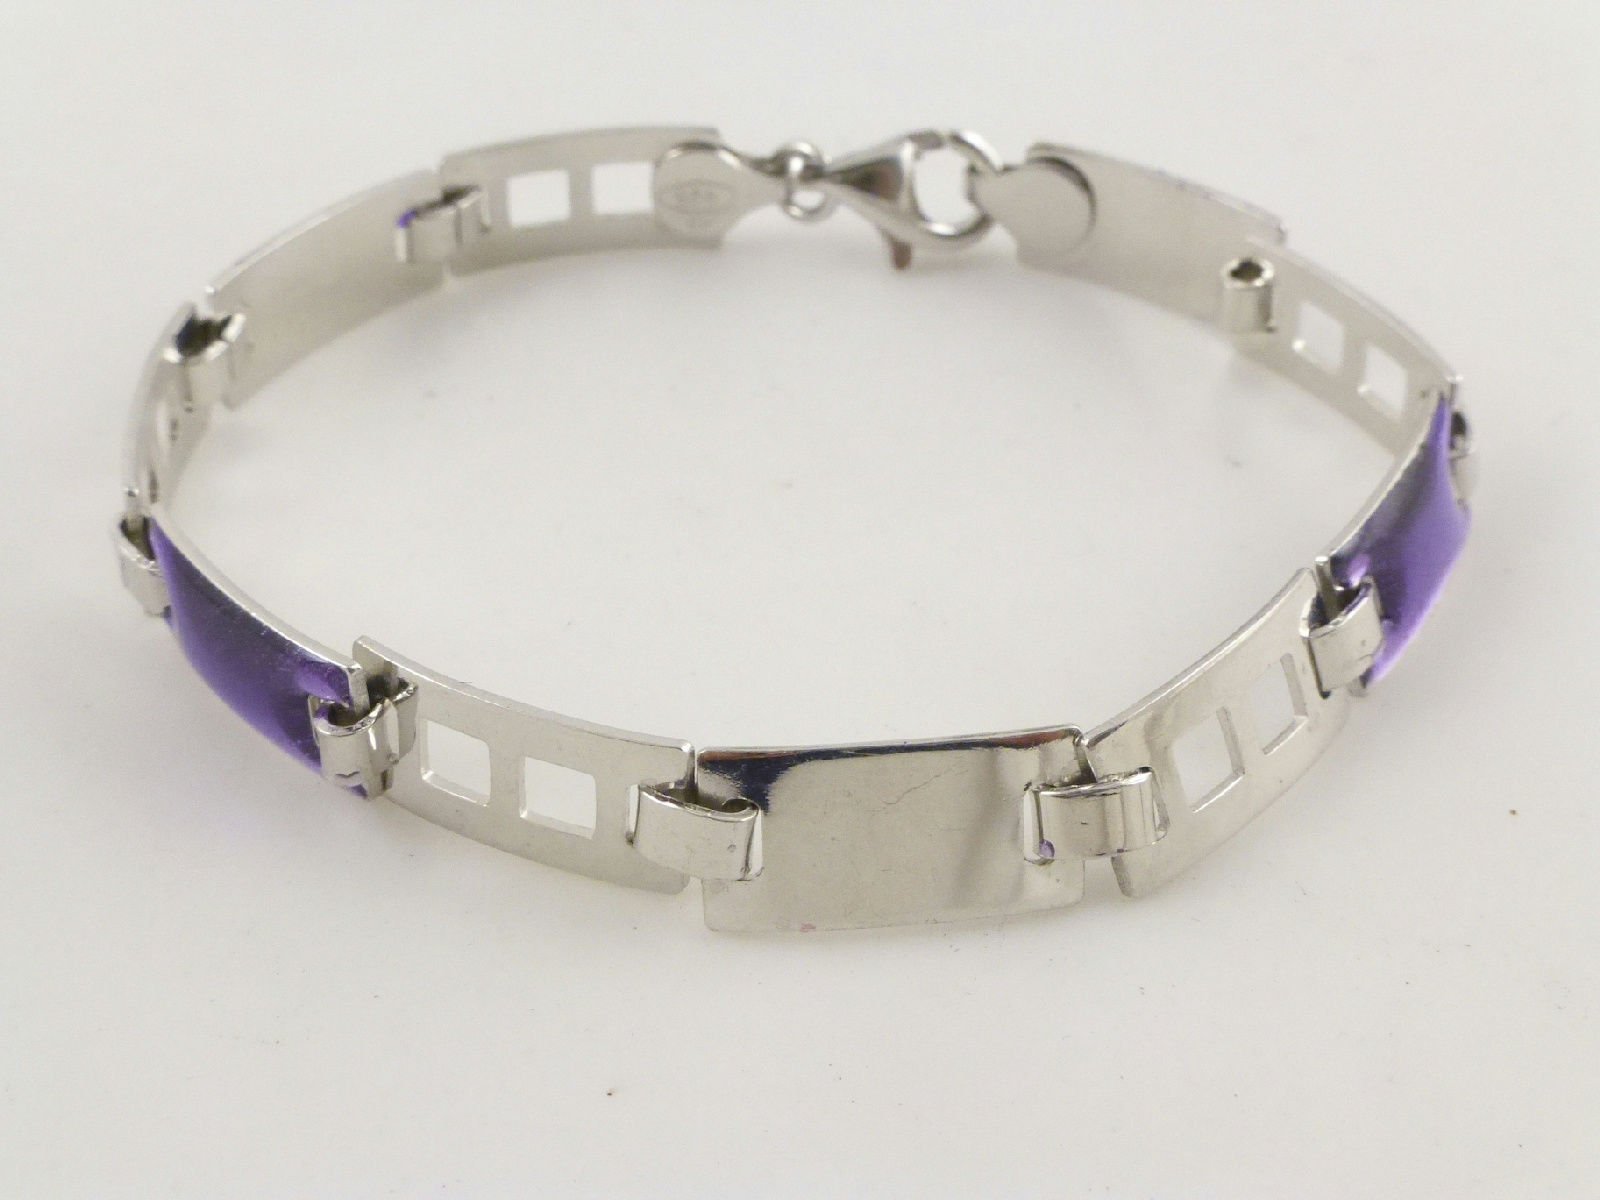 Primary image for PURPLE Enamel Link Chain BRACELET in Sterling Silver - 7.5 inches -FREE SHIPPING